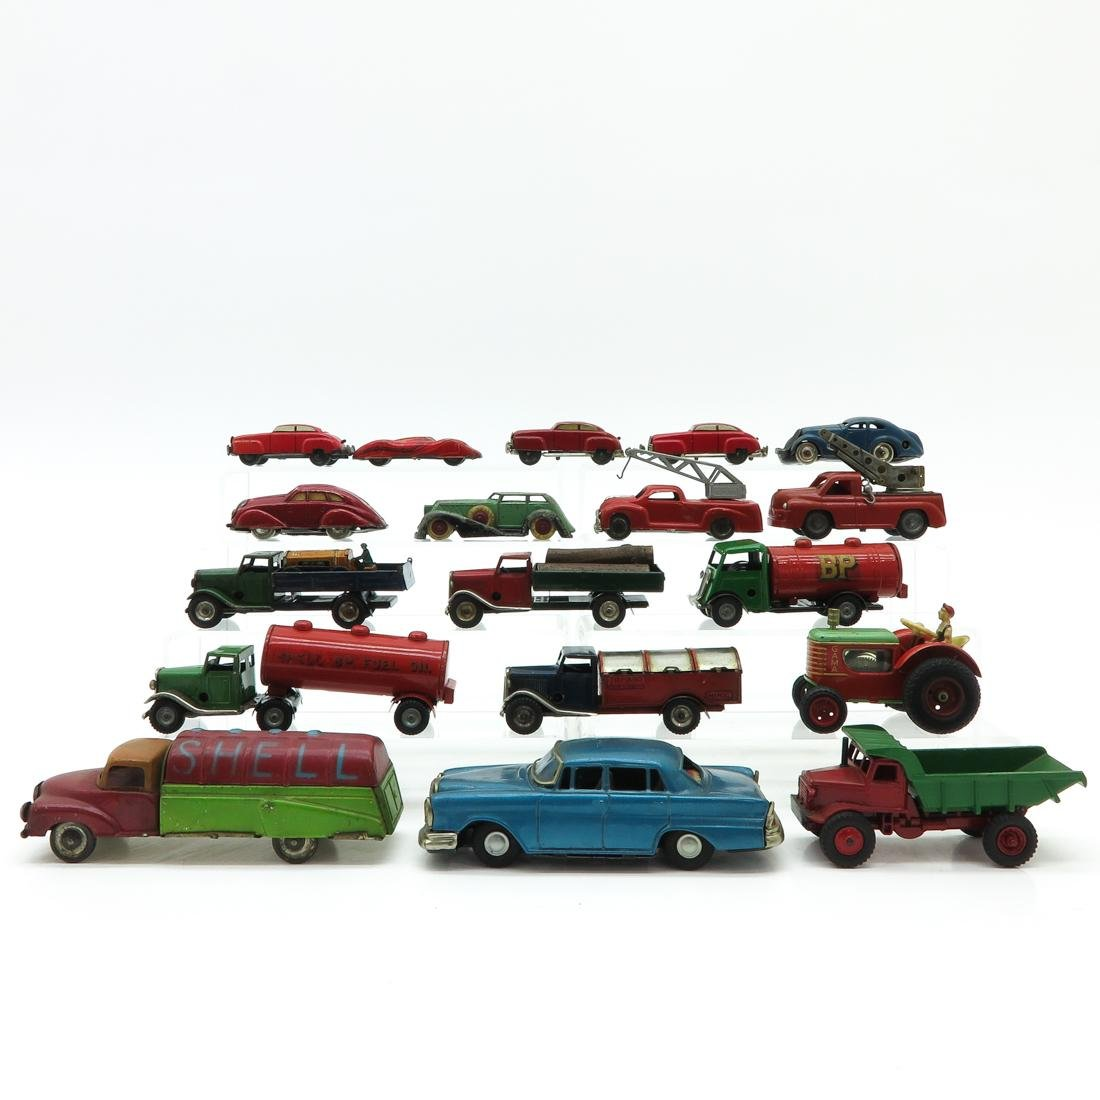 Lot of 18 Vintage Toy Cars